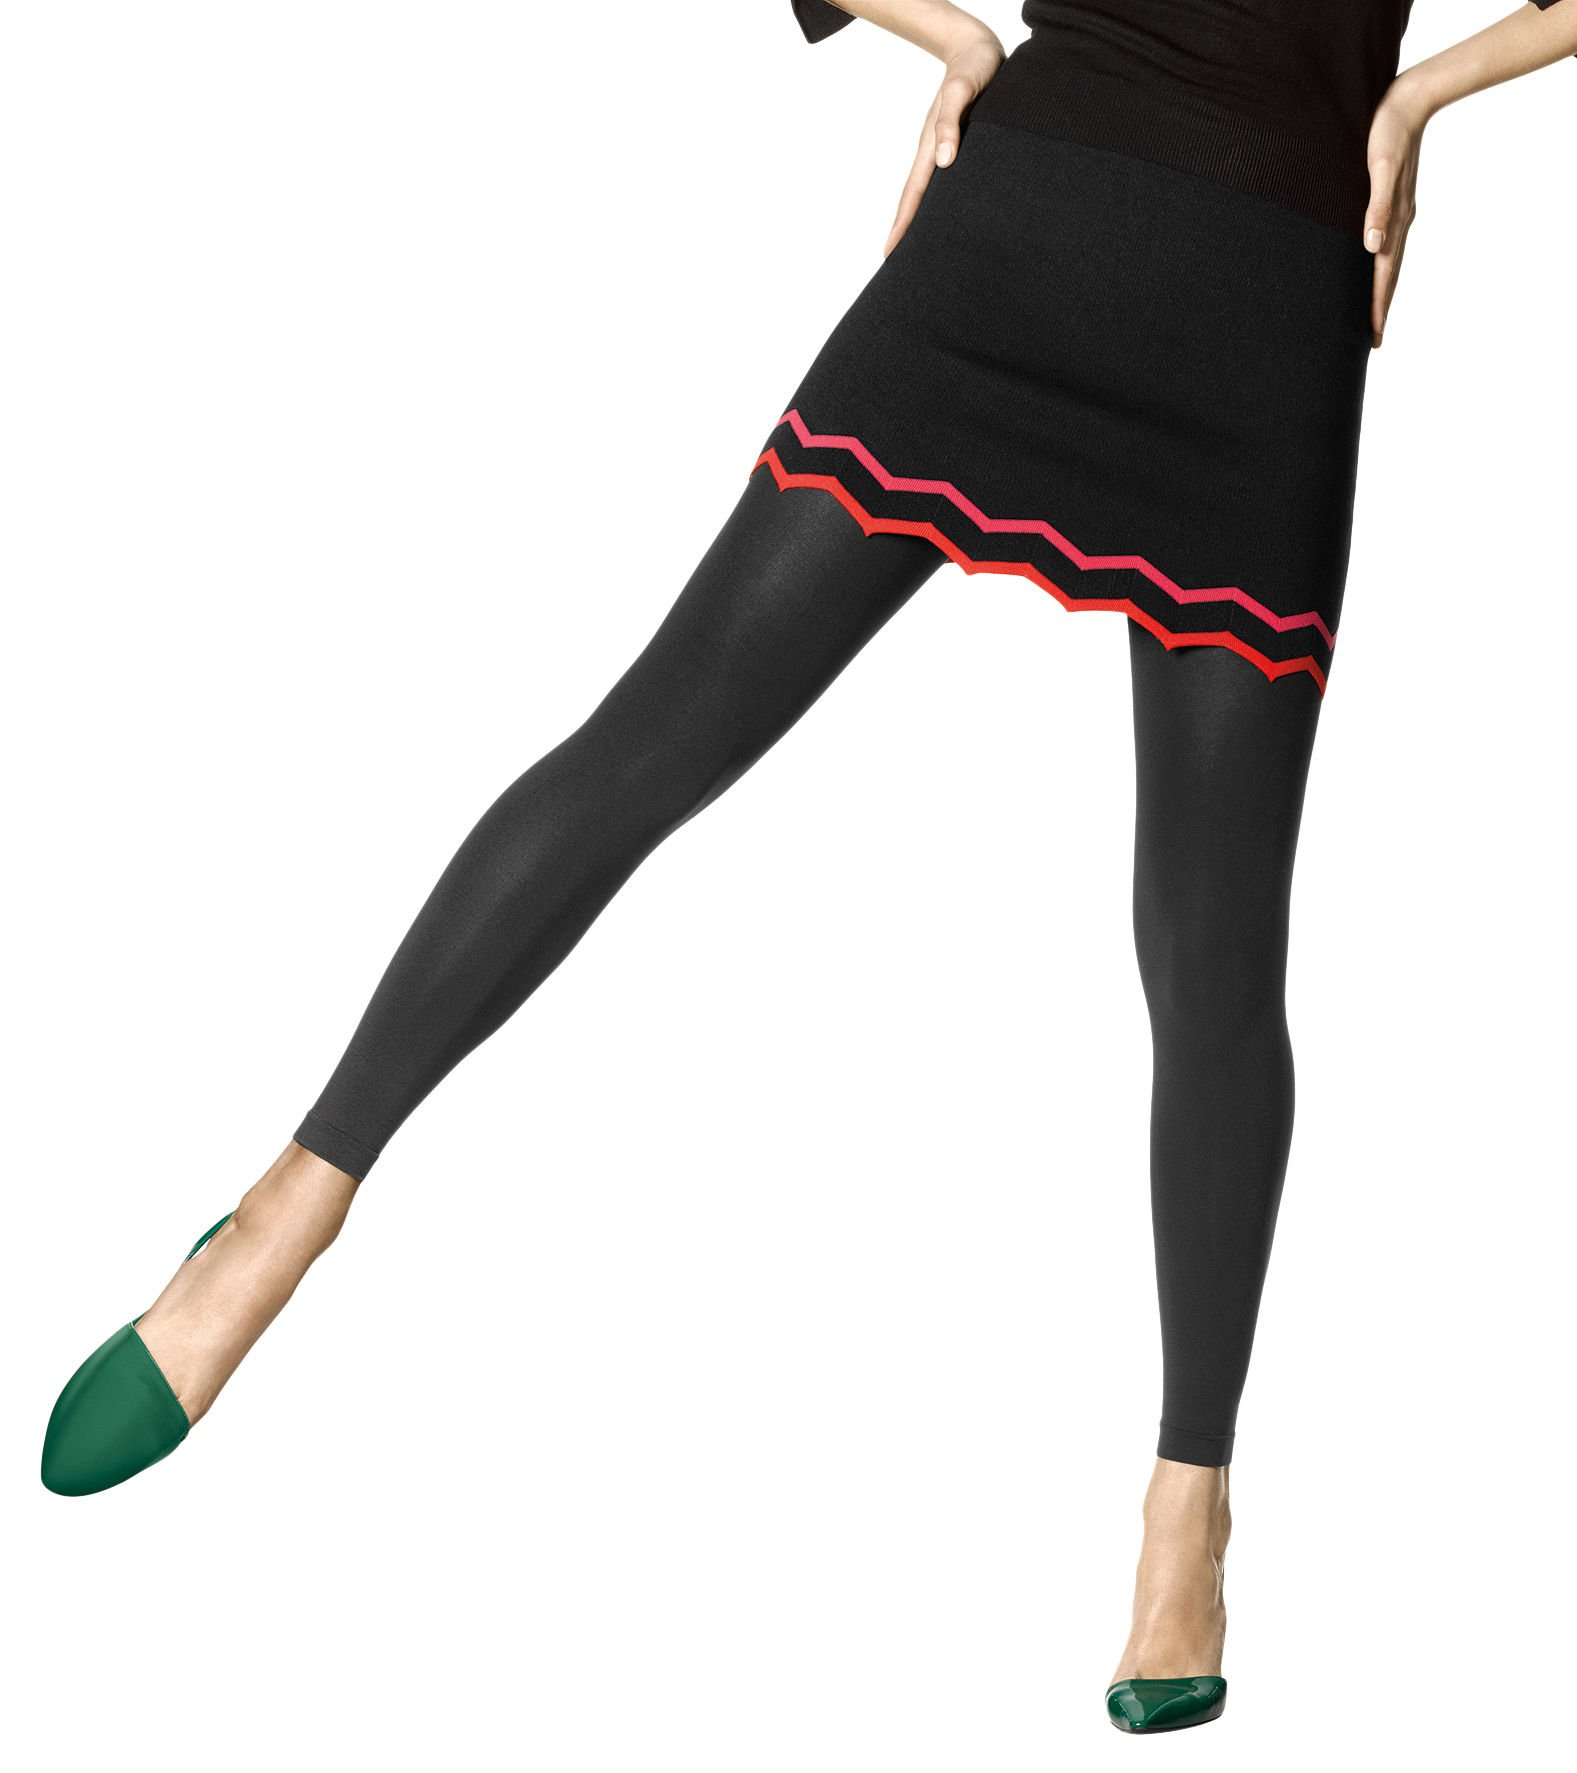 HUE Women's Super Opaque Footless Tights with Control Top, Black, 2